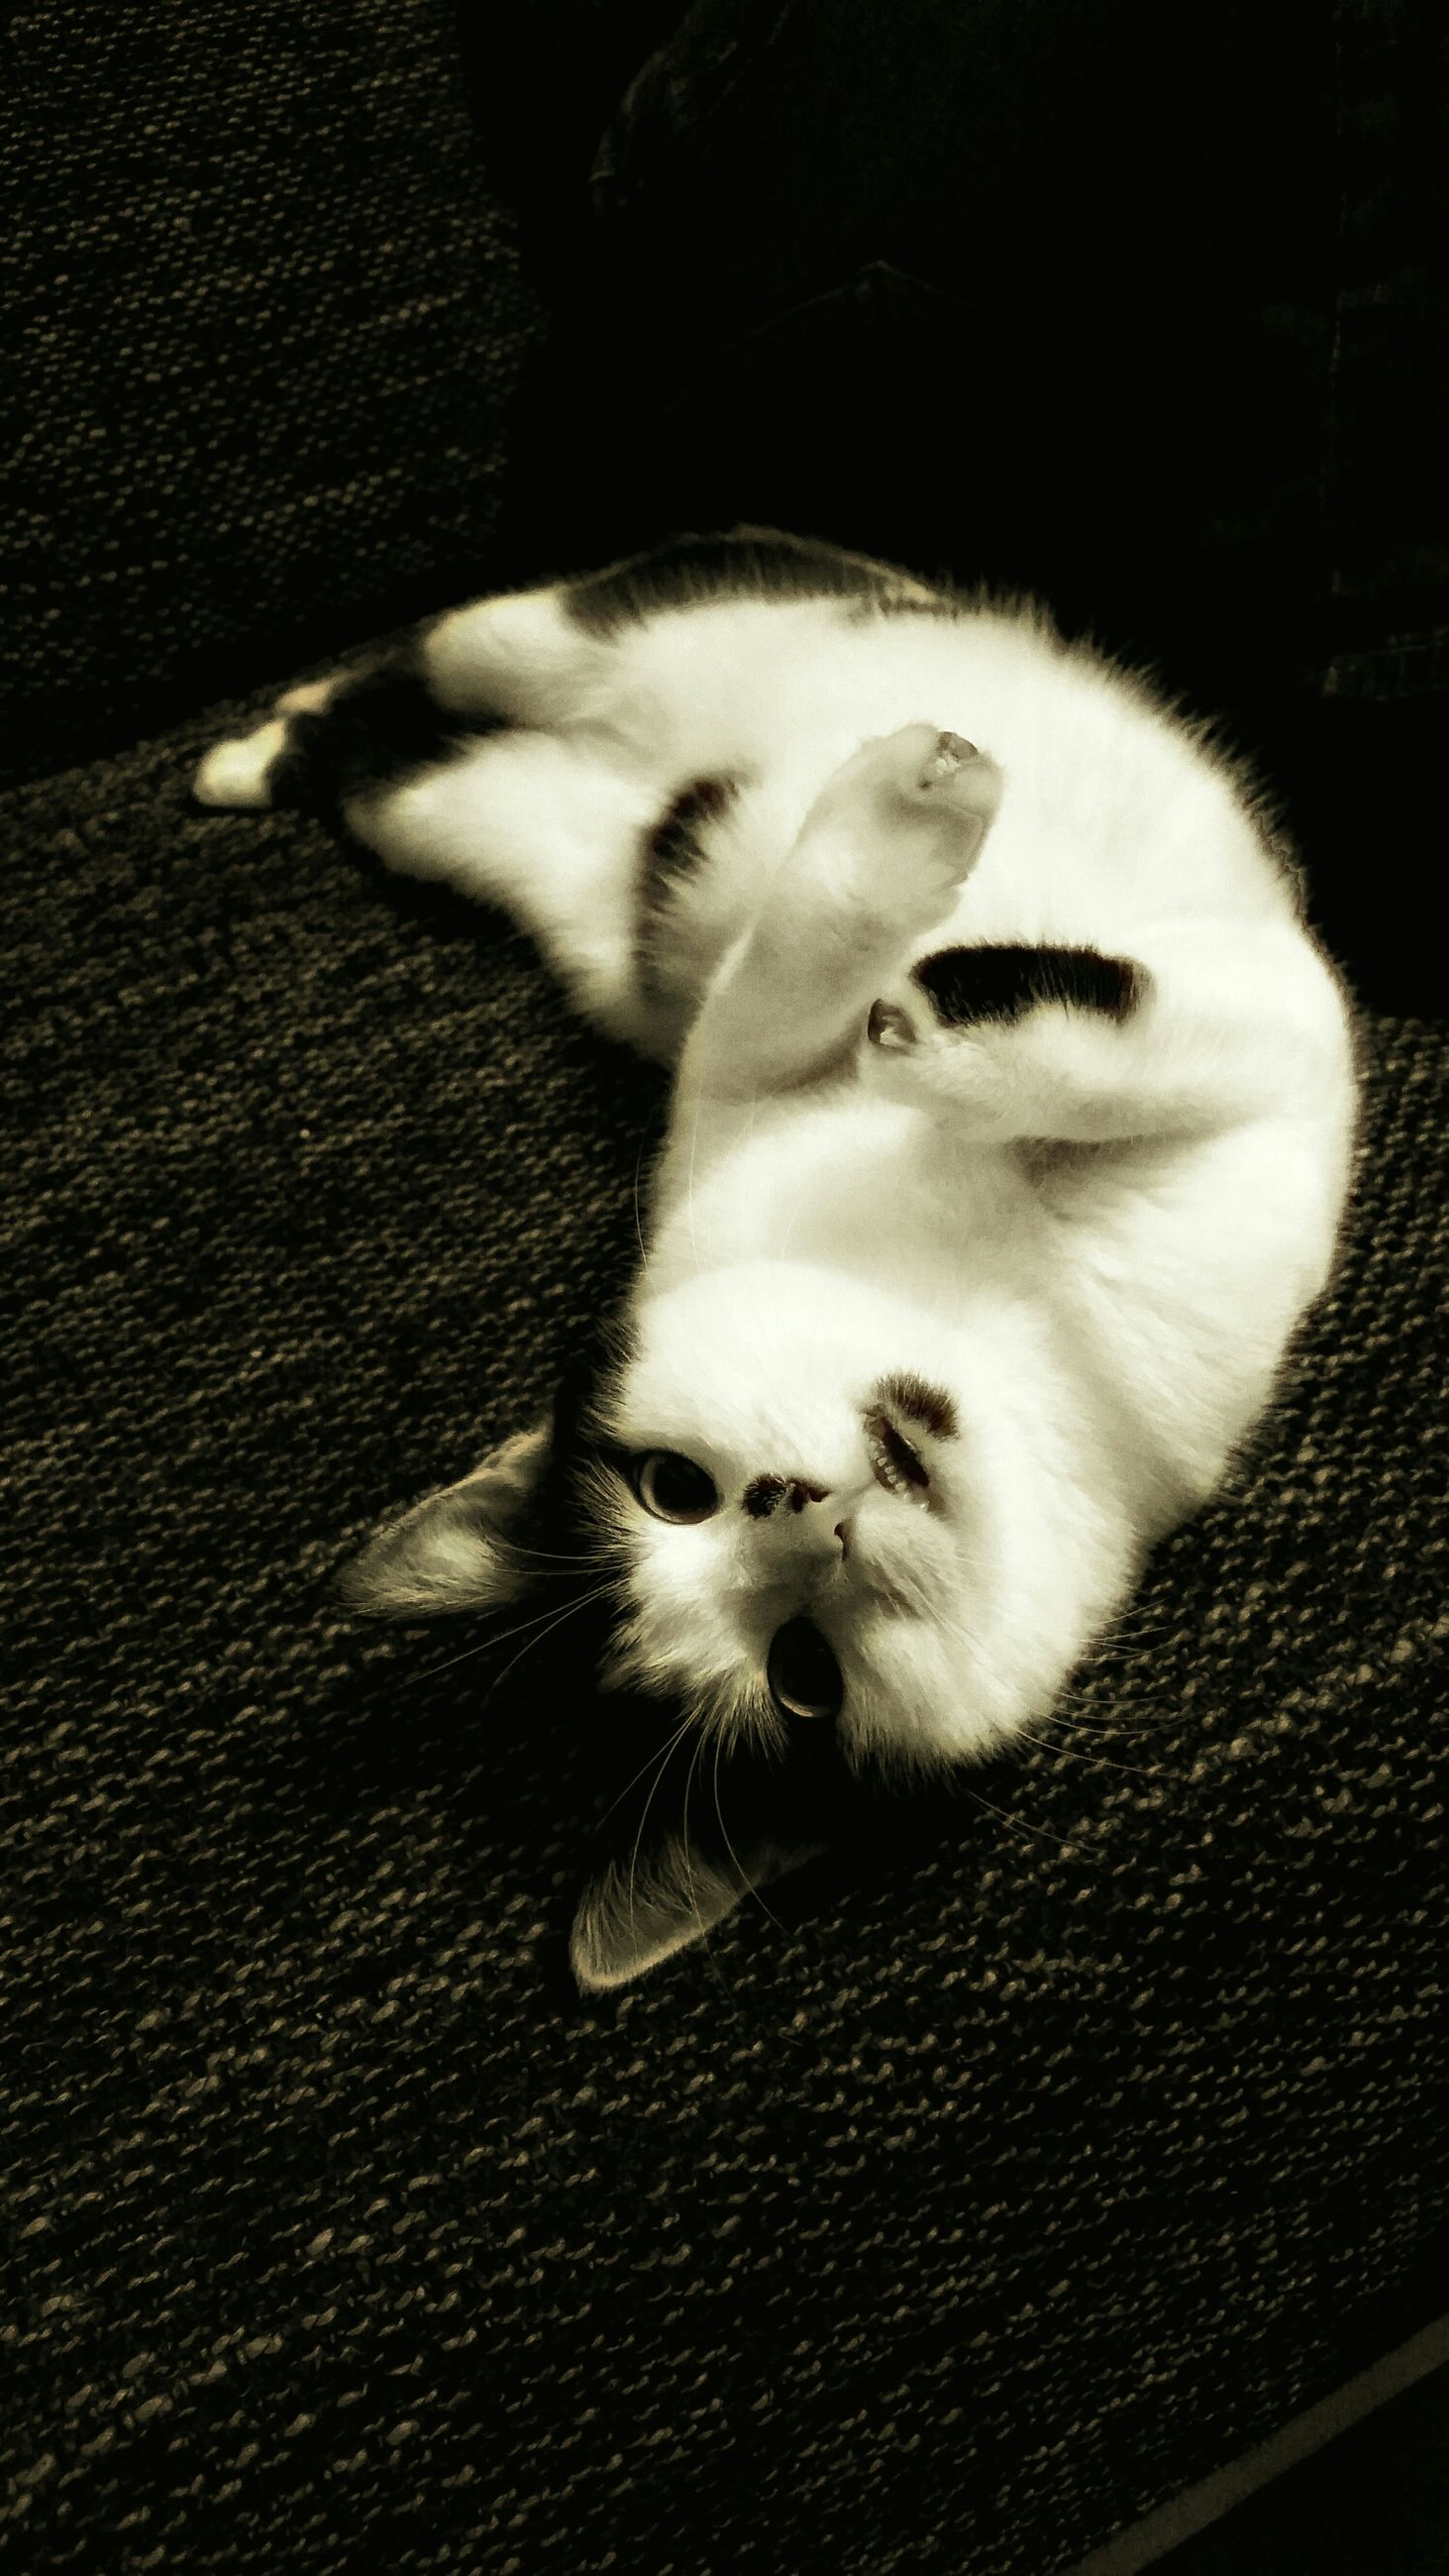 animal themes, one animal, pets, domestic animals, mammal, domestic cat, cat, high angle view, feline, relaxation, sitting, whisker, lying down, full length, close-up, no people, street, indoors, zoology, resting